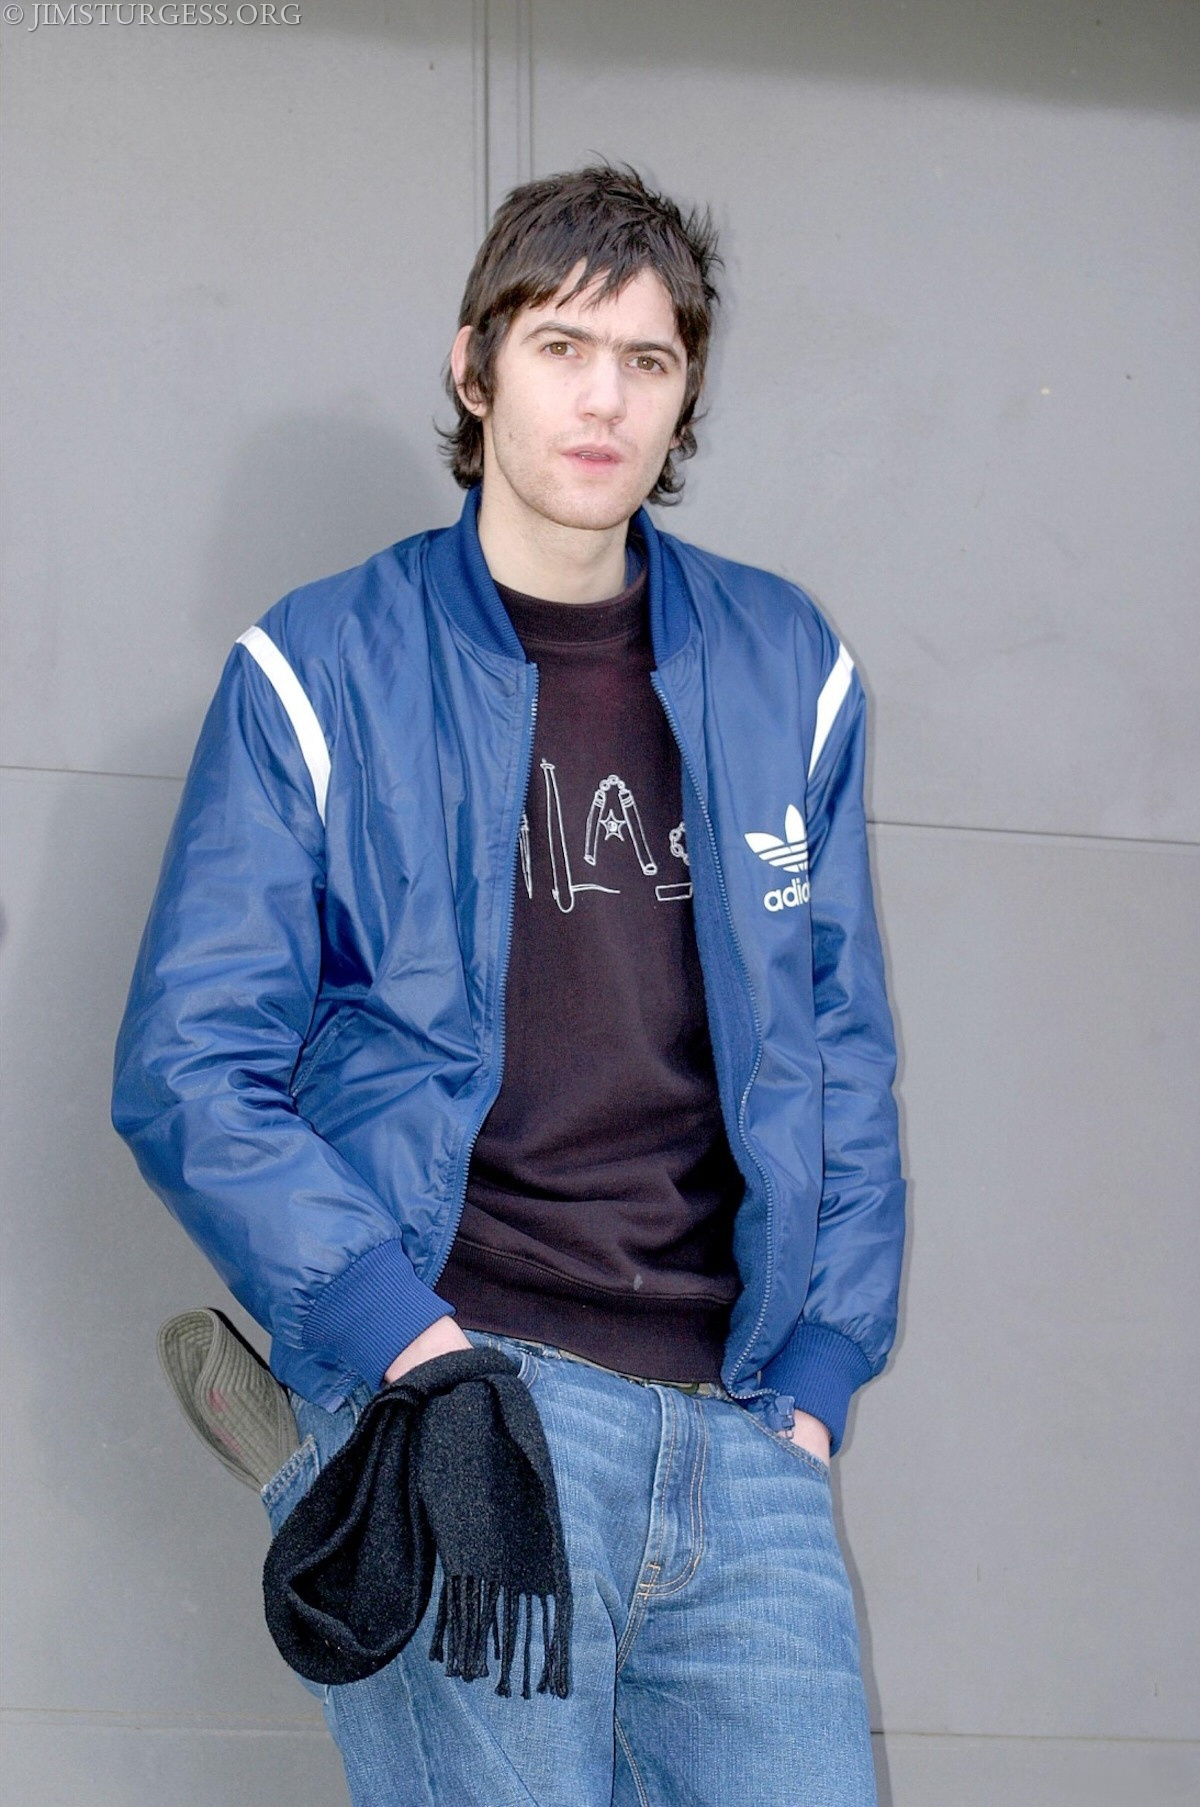 jim sturgess - Jim Sturgess Photo (6207100) - Fanpop